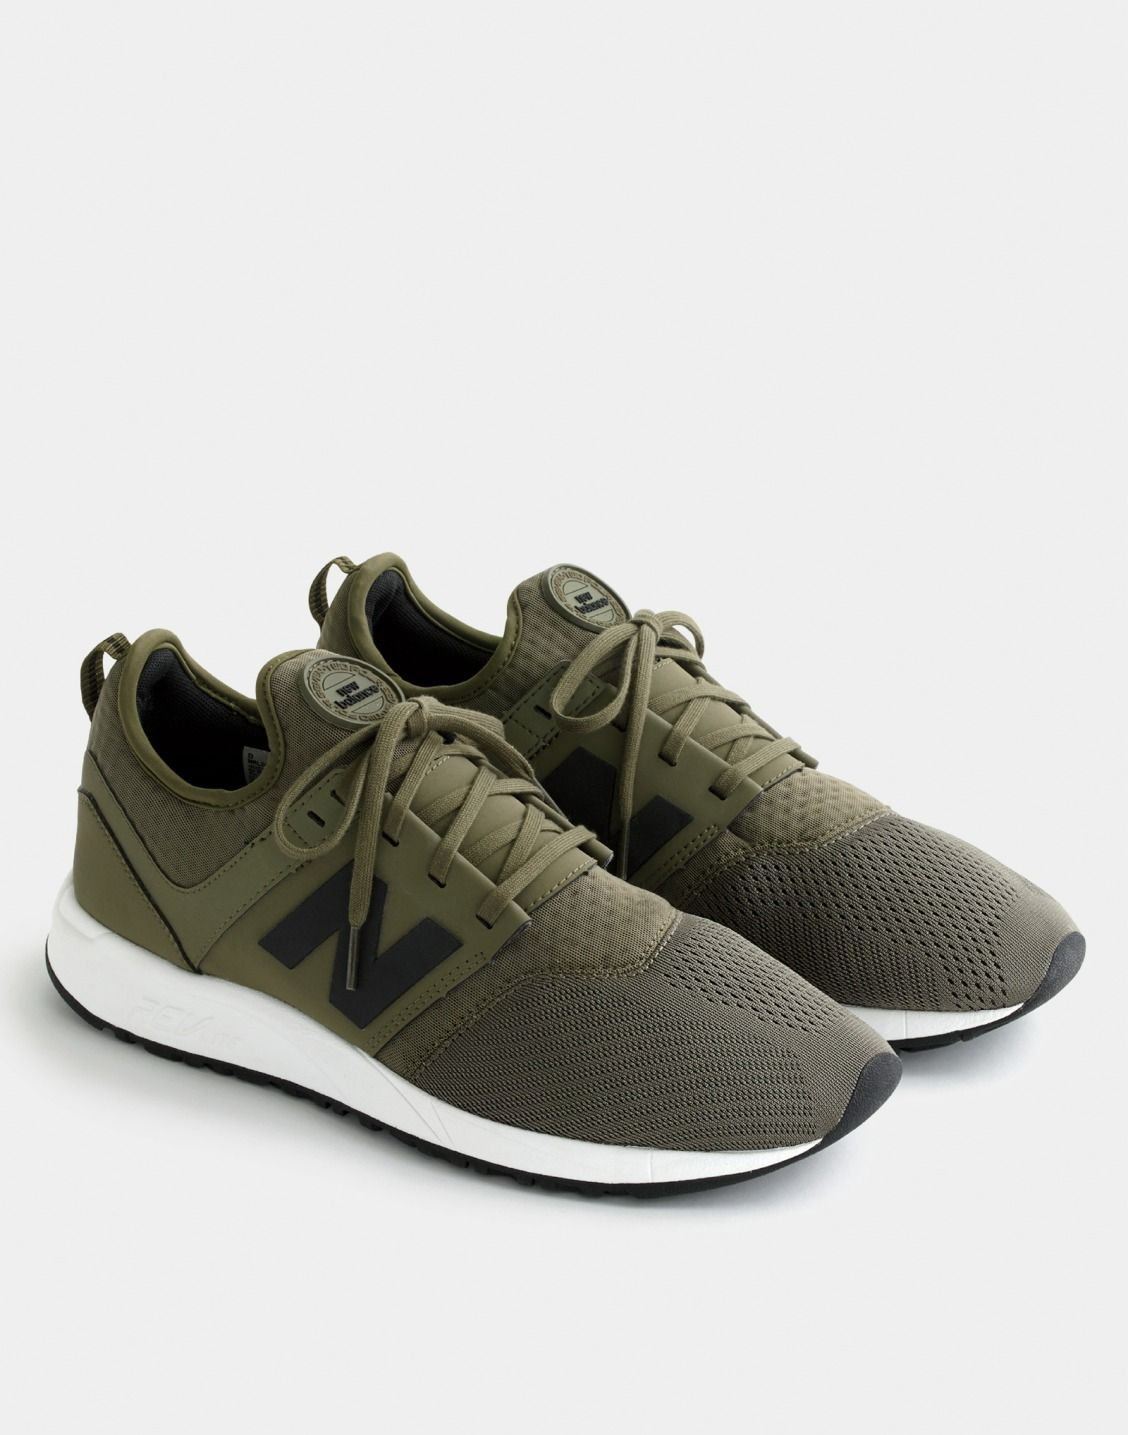 new balance men's trainers 247